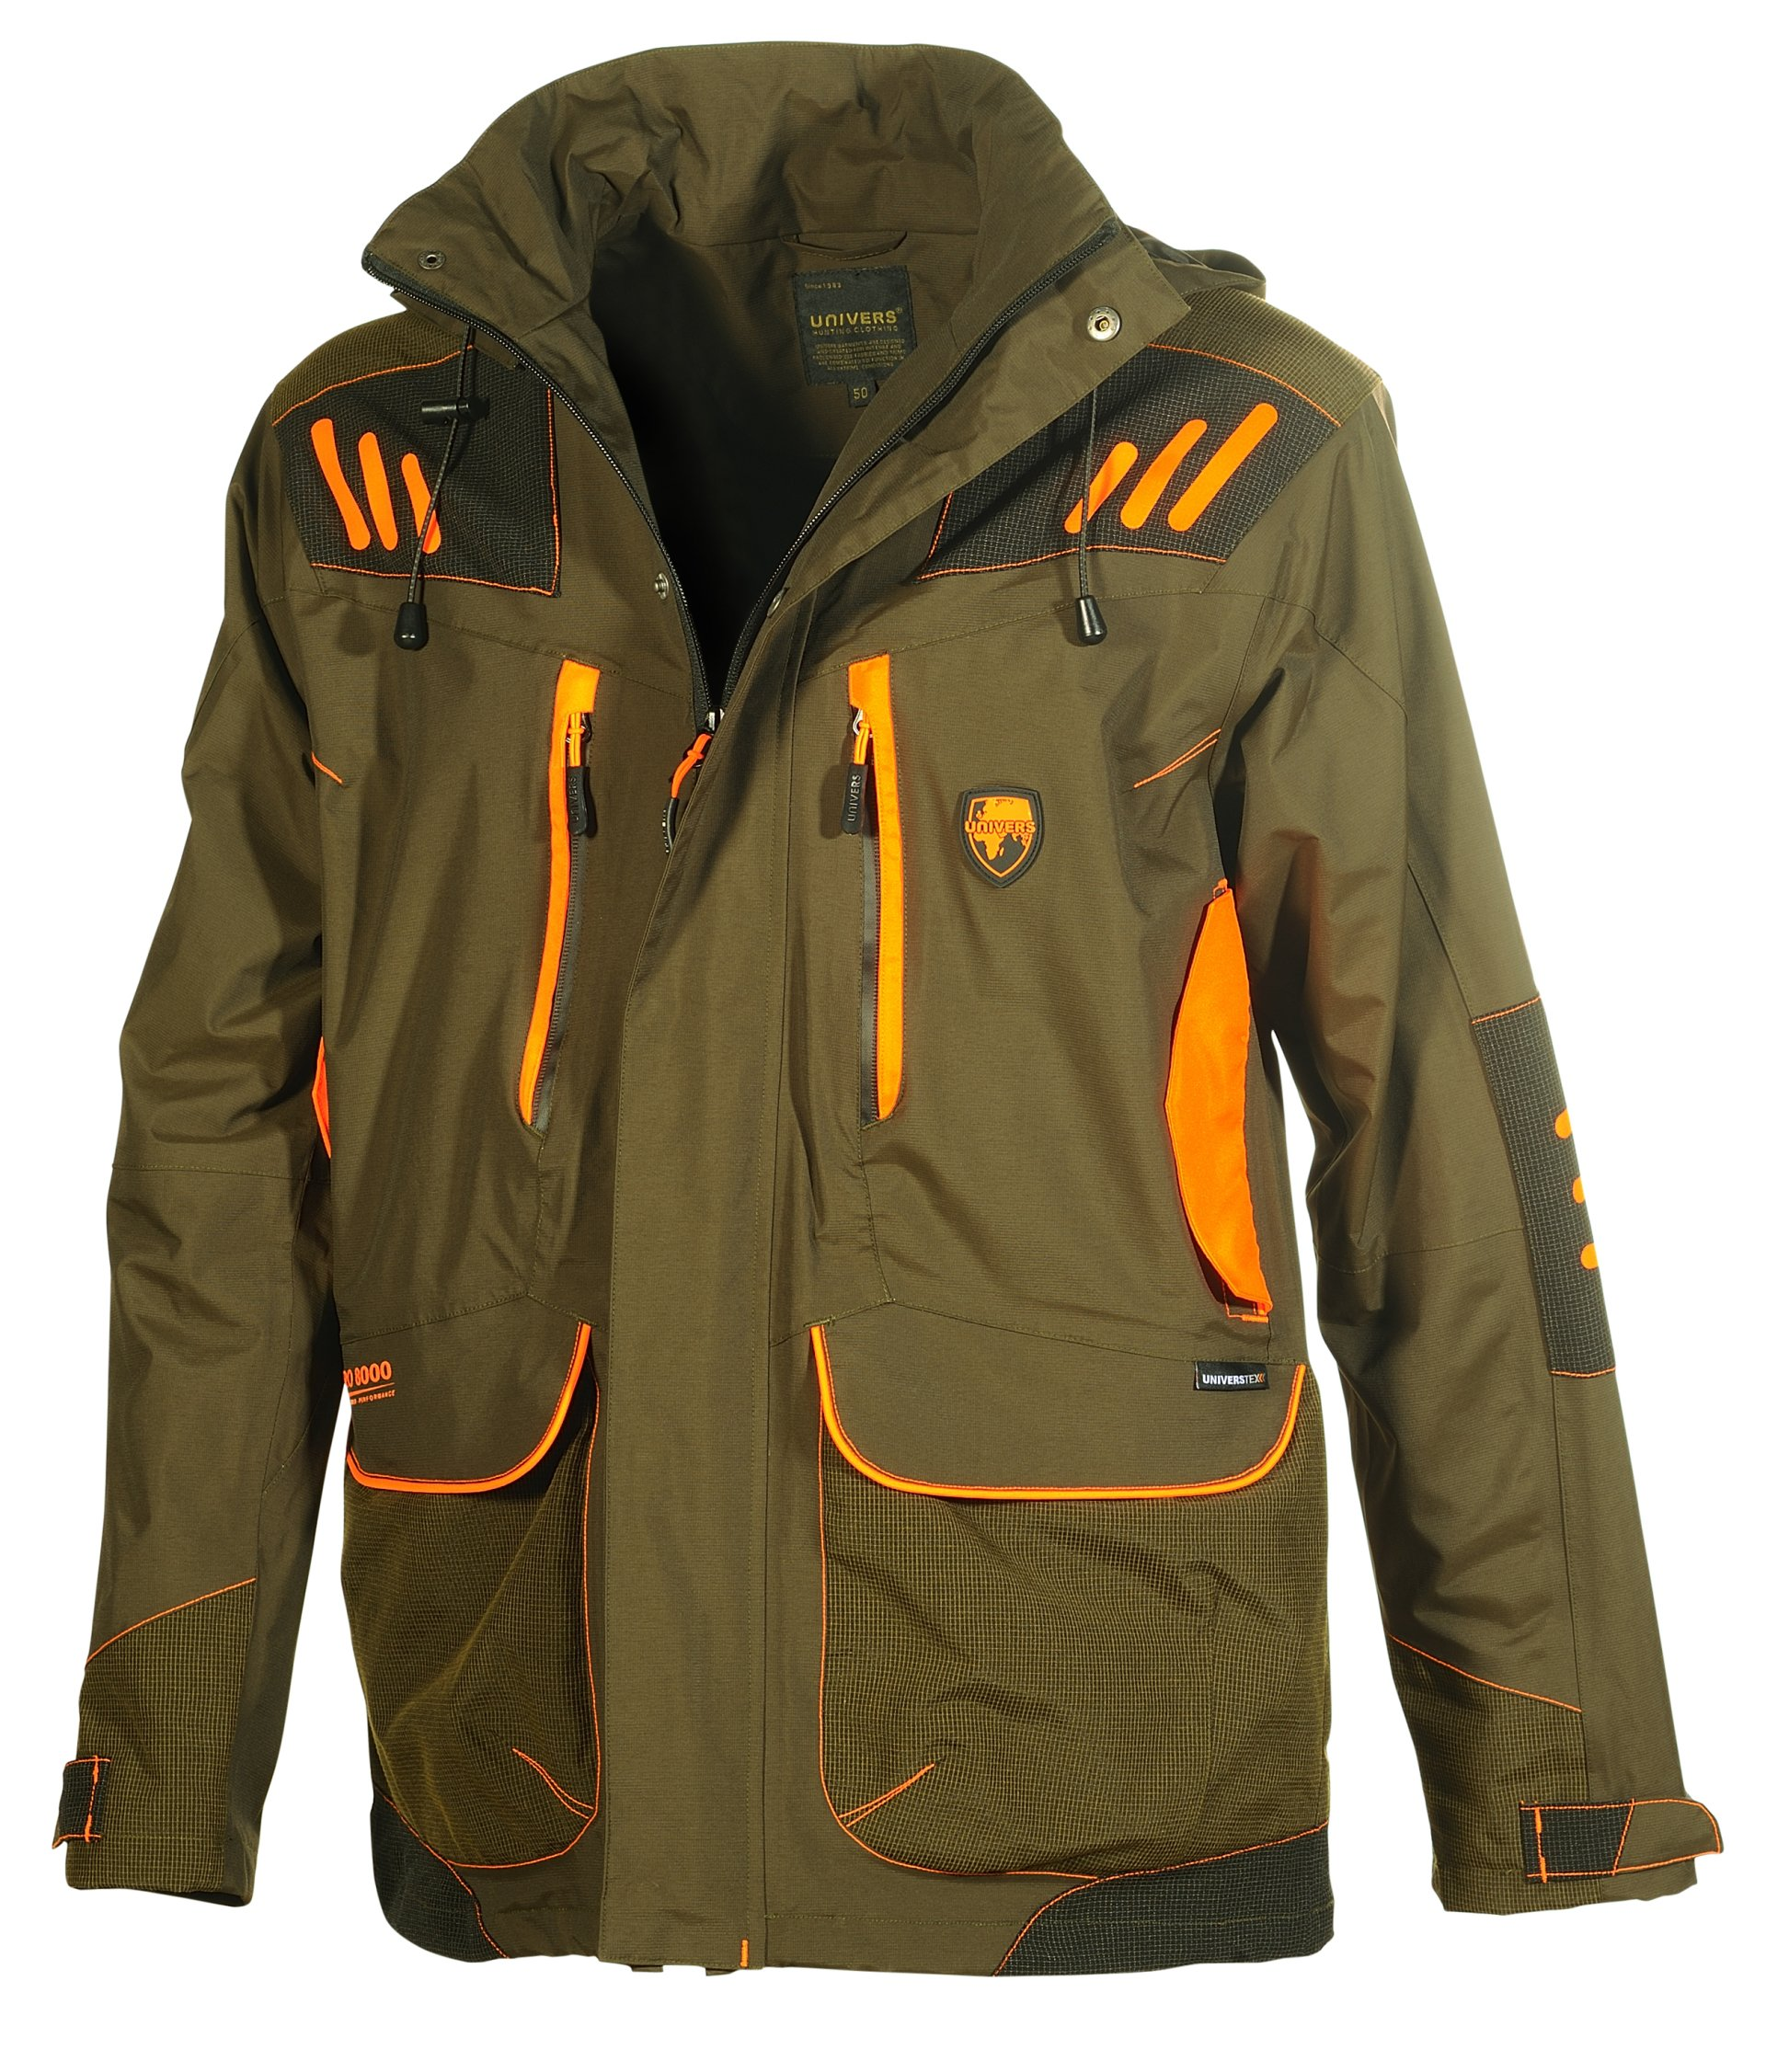 Univers Forest Jacket 91147/392